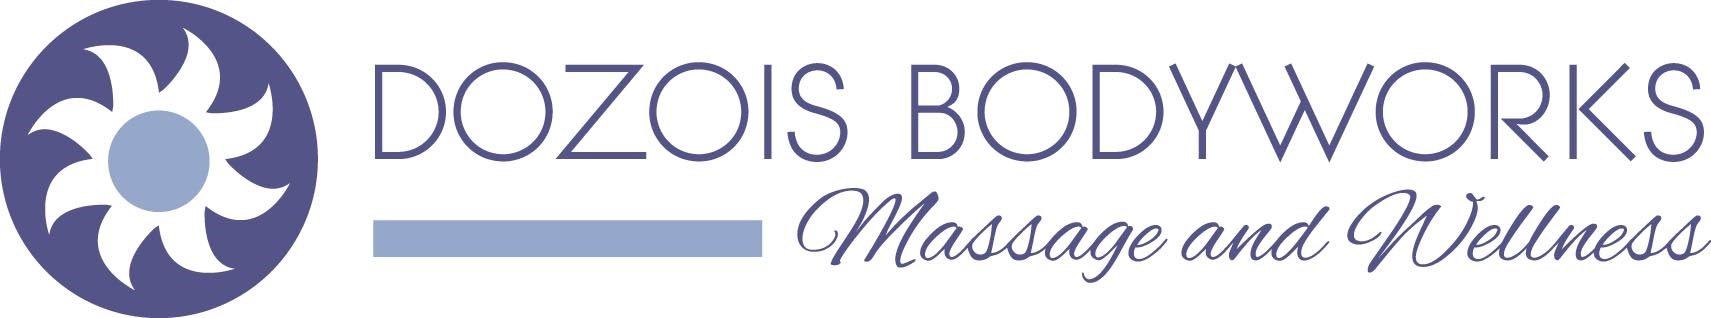 Sponsor Dozois BodyWorks Massage Therapy